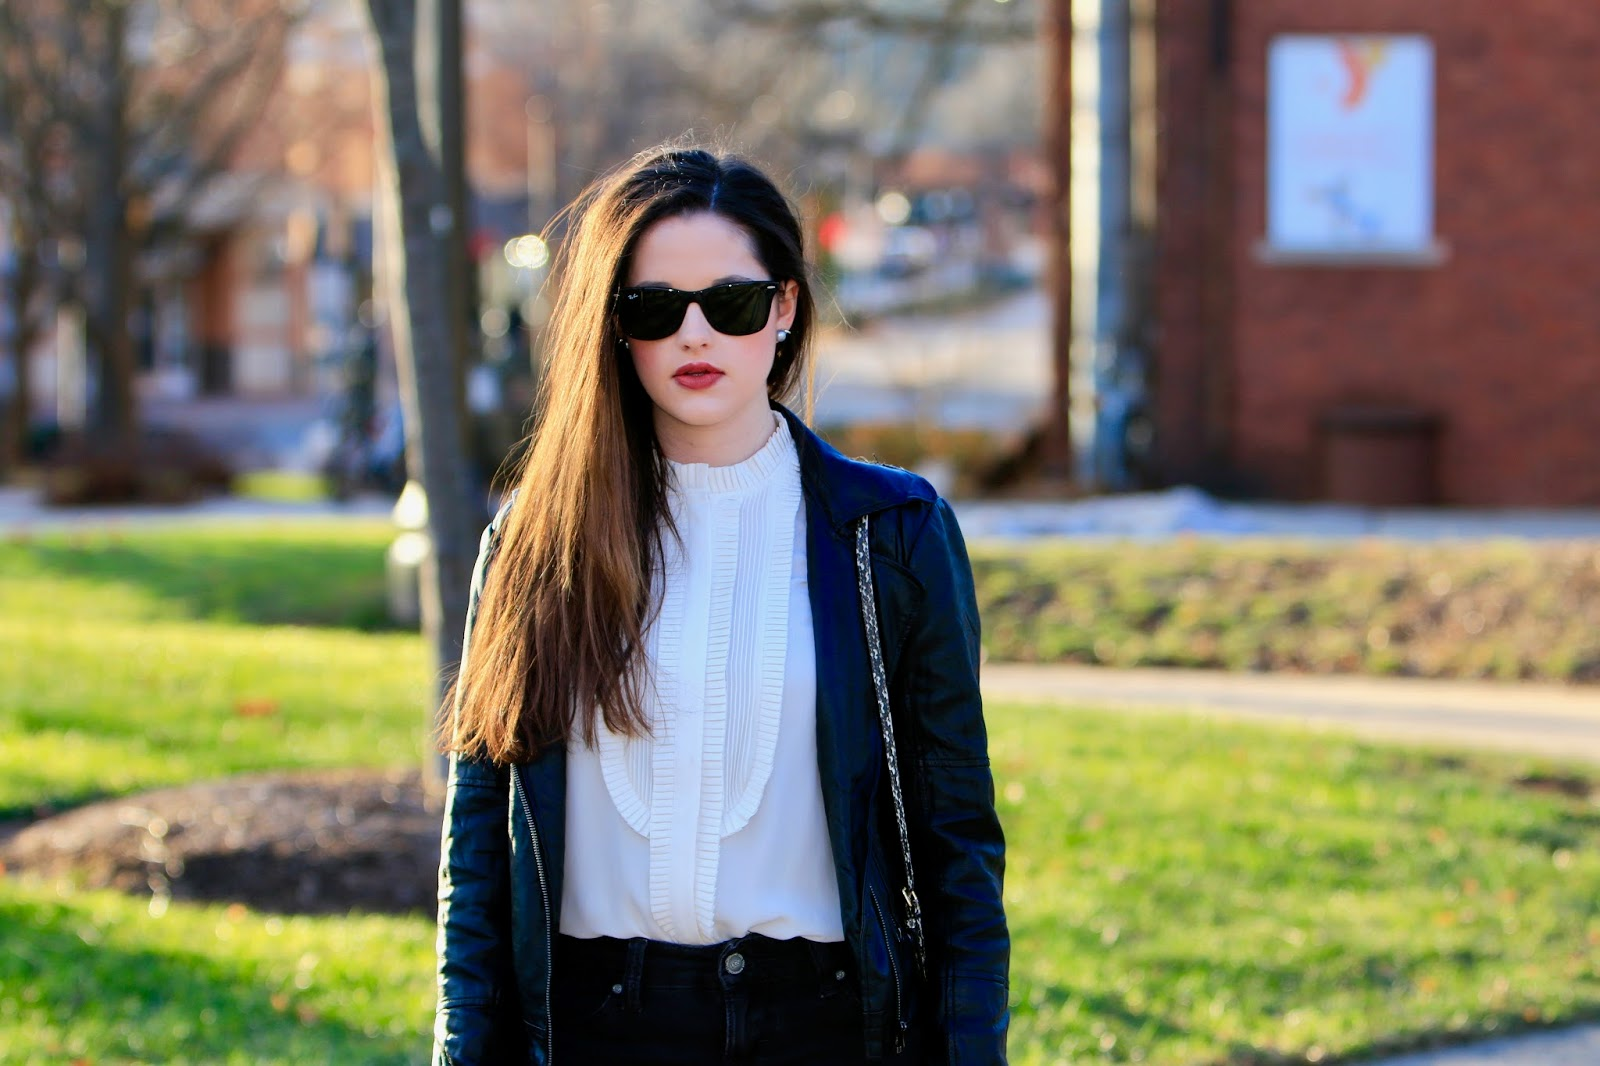 ray ban sunglasses fashion blogger